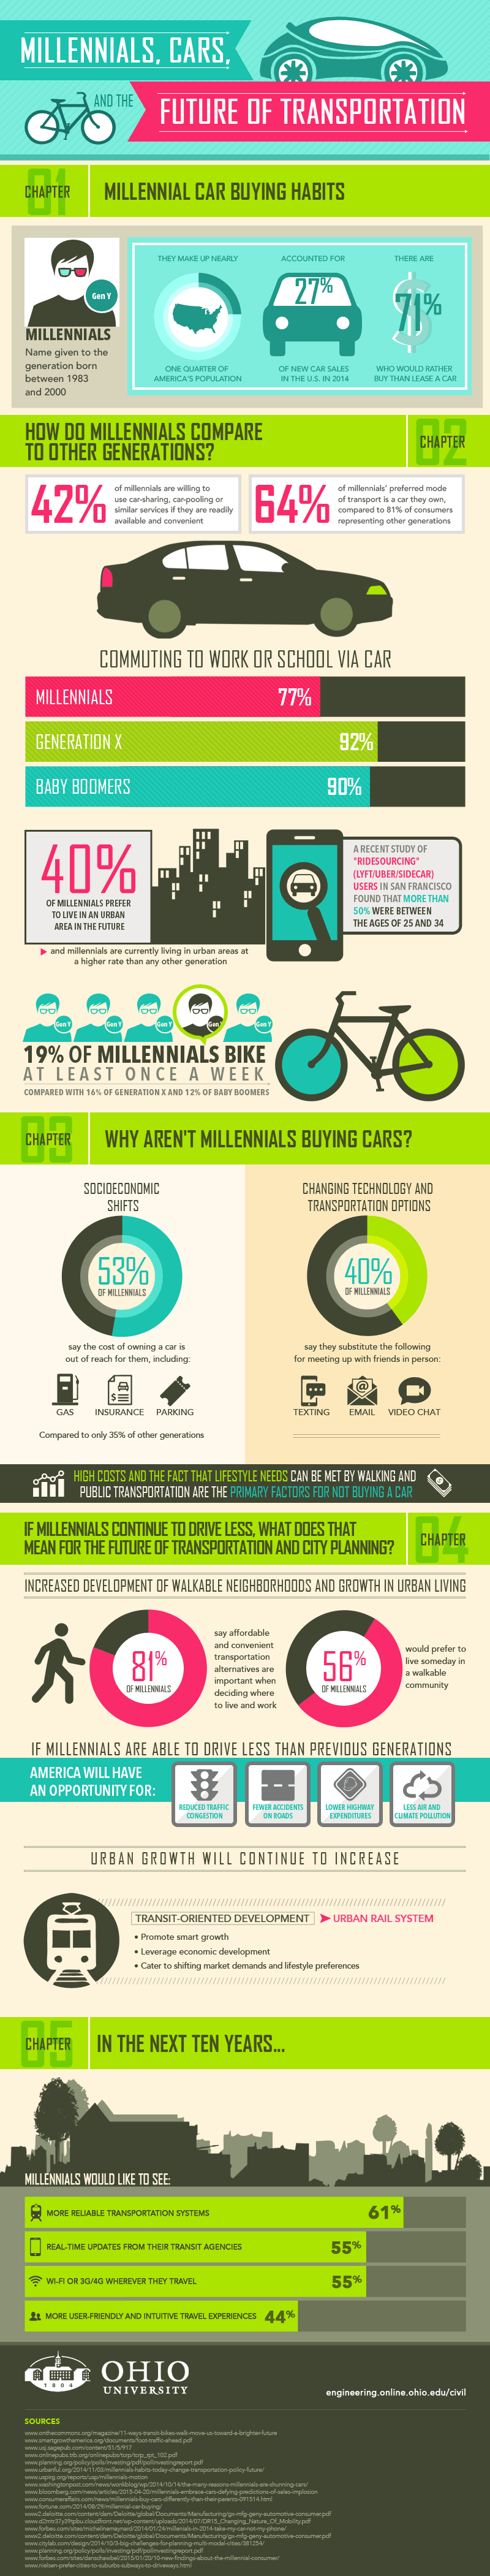 Millennials, Cars and the Future of Transportation #Infographic